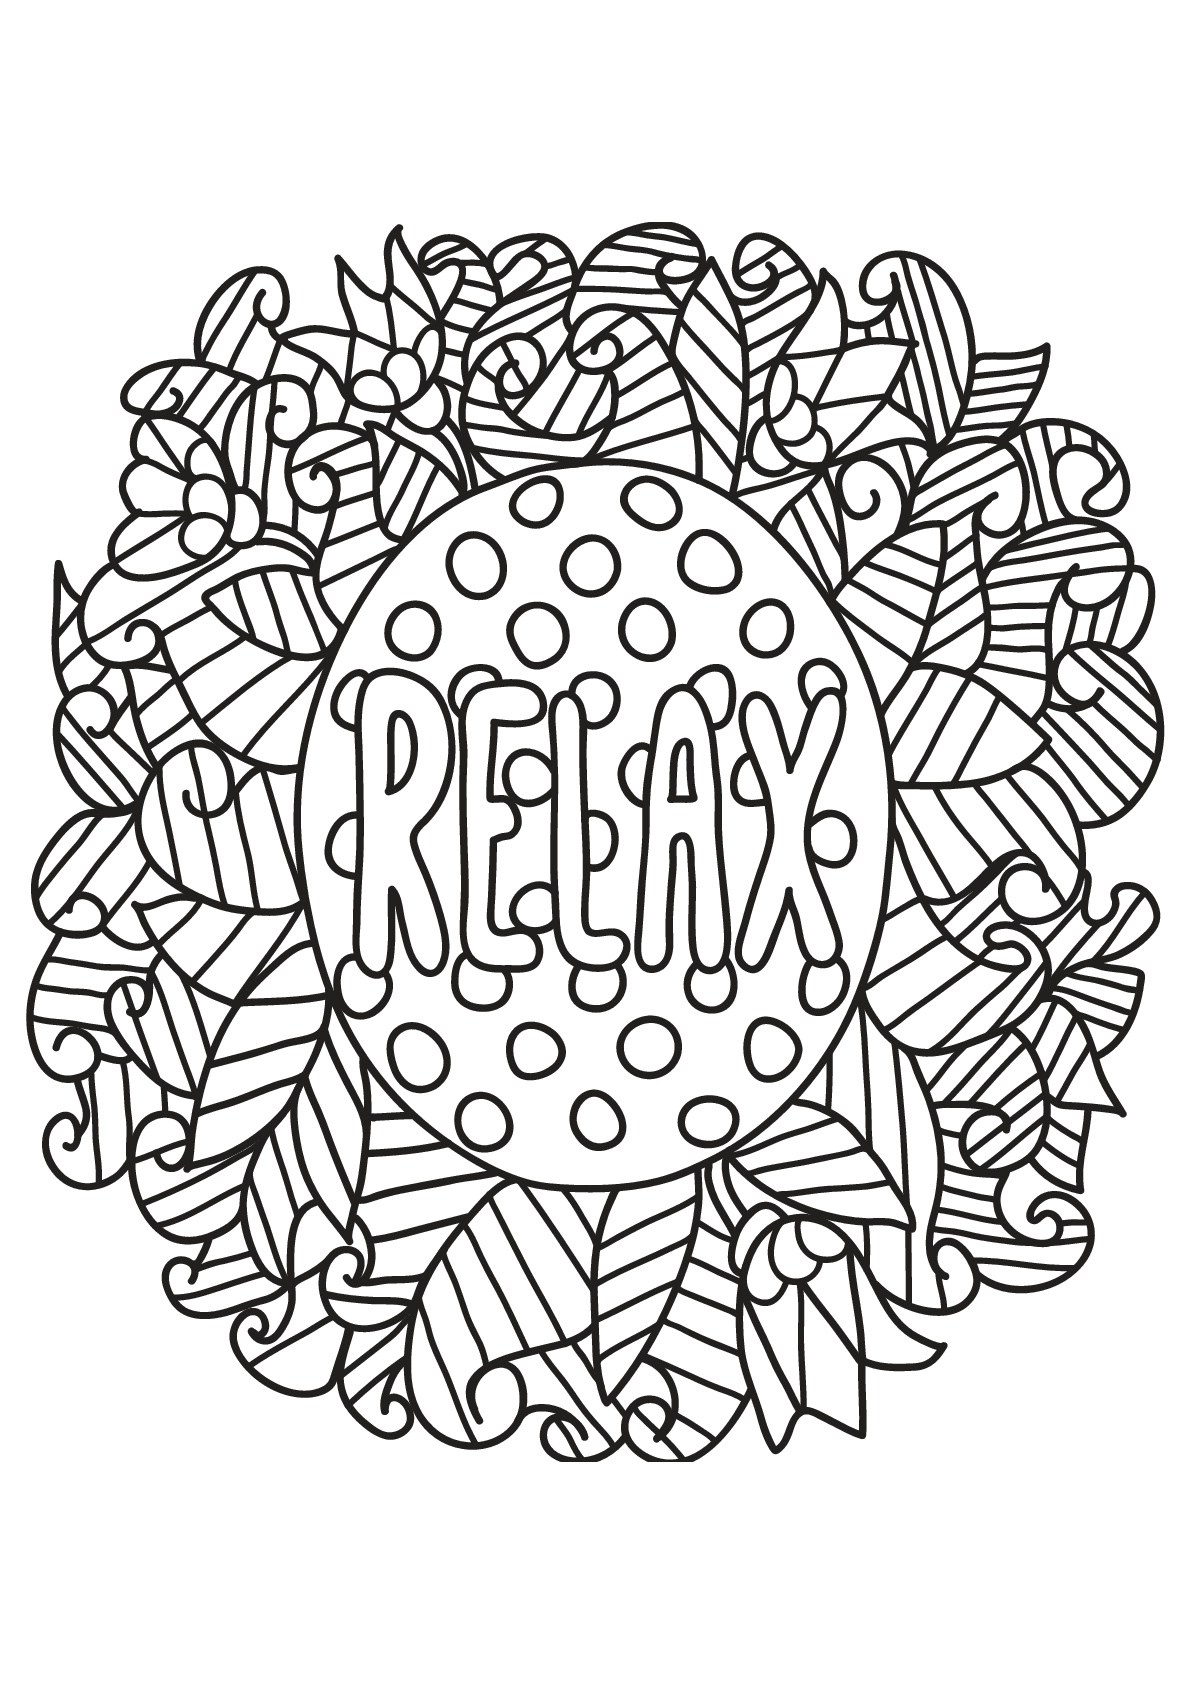 Free book quote 19 - Quotes Adult Coloring Pages | printable coloring pages for adults quotes